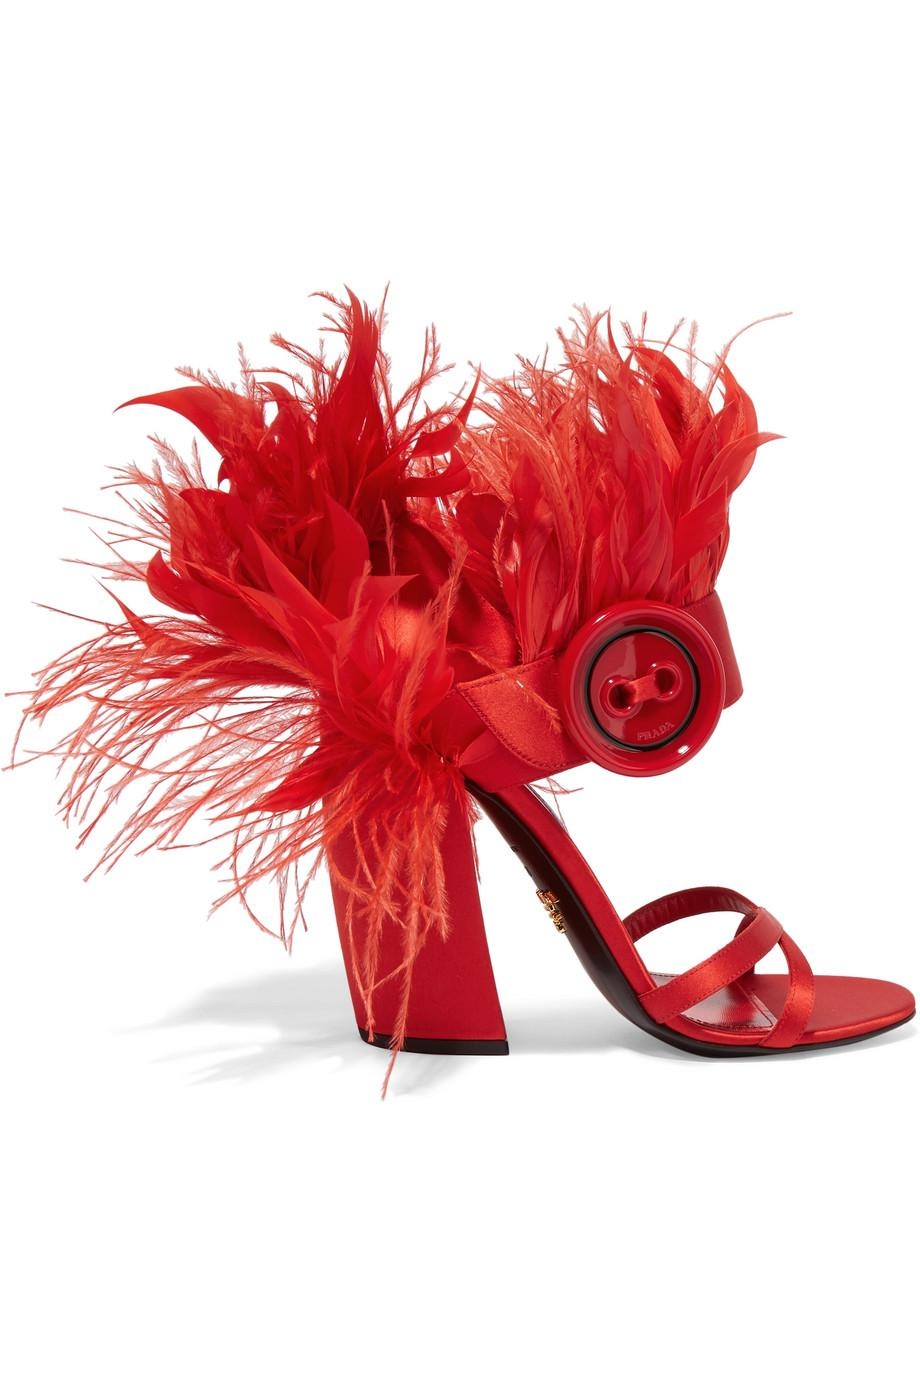 674106c1394 Lyst - Prada Feather-trimmed Satin Sandals in Red